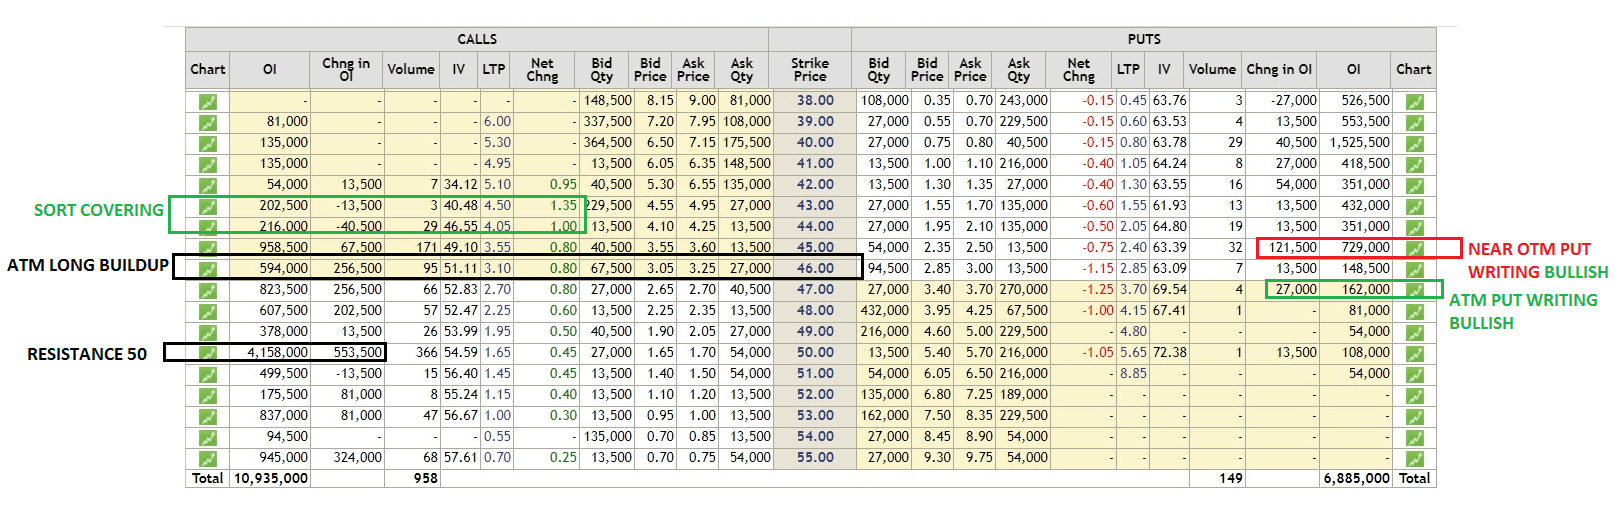 OPTION CHAIN TABLE FOR ABOVE CHART